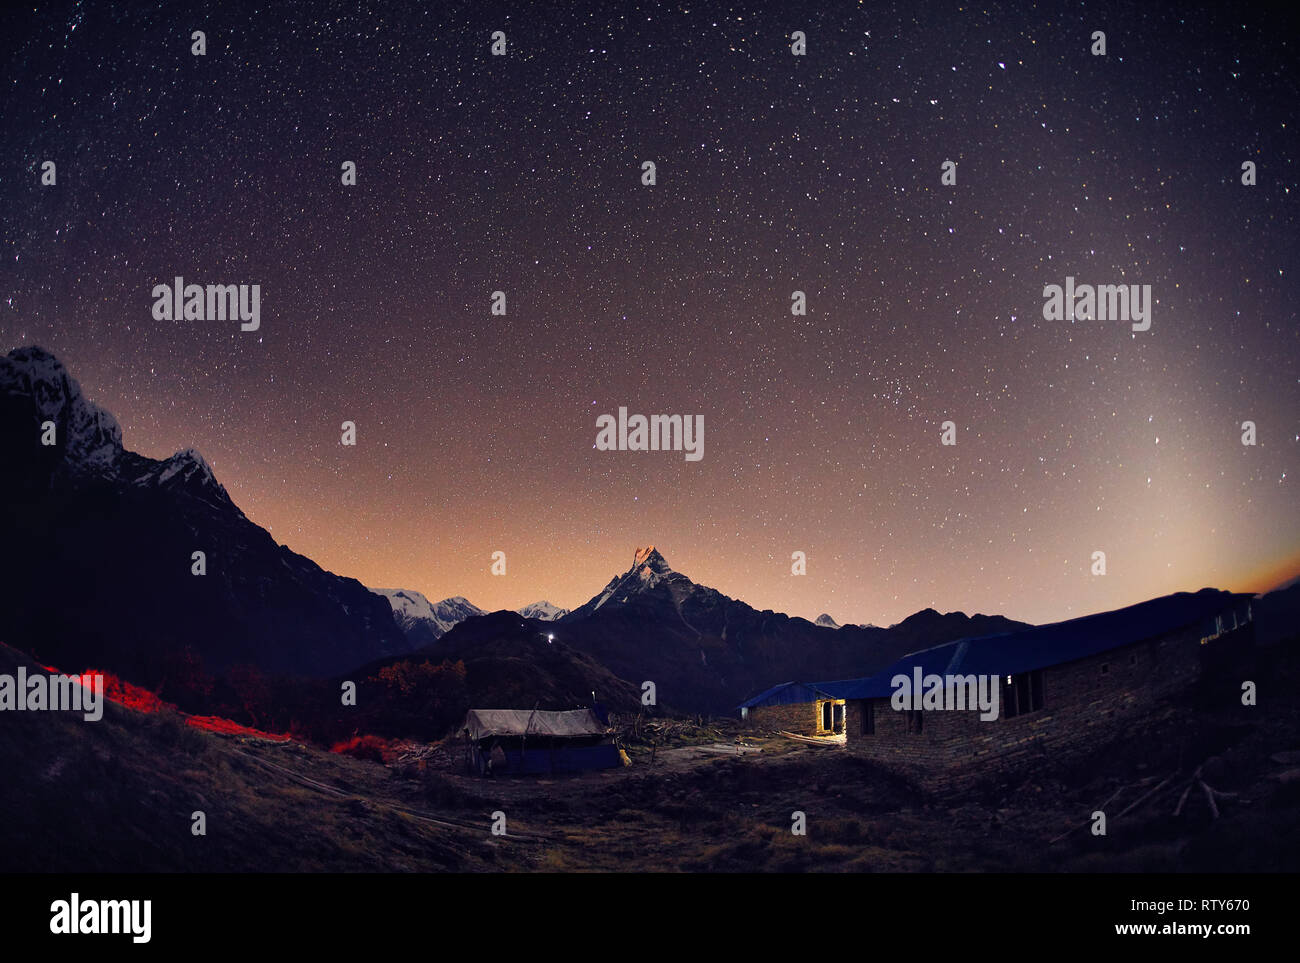 Machapuchare Mountain of Himalayas at night starry sky in Nepal - Stock Image